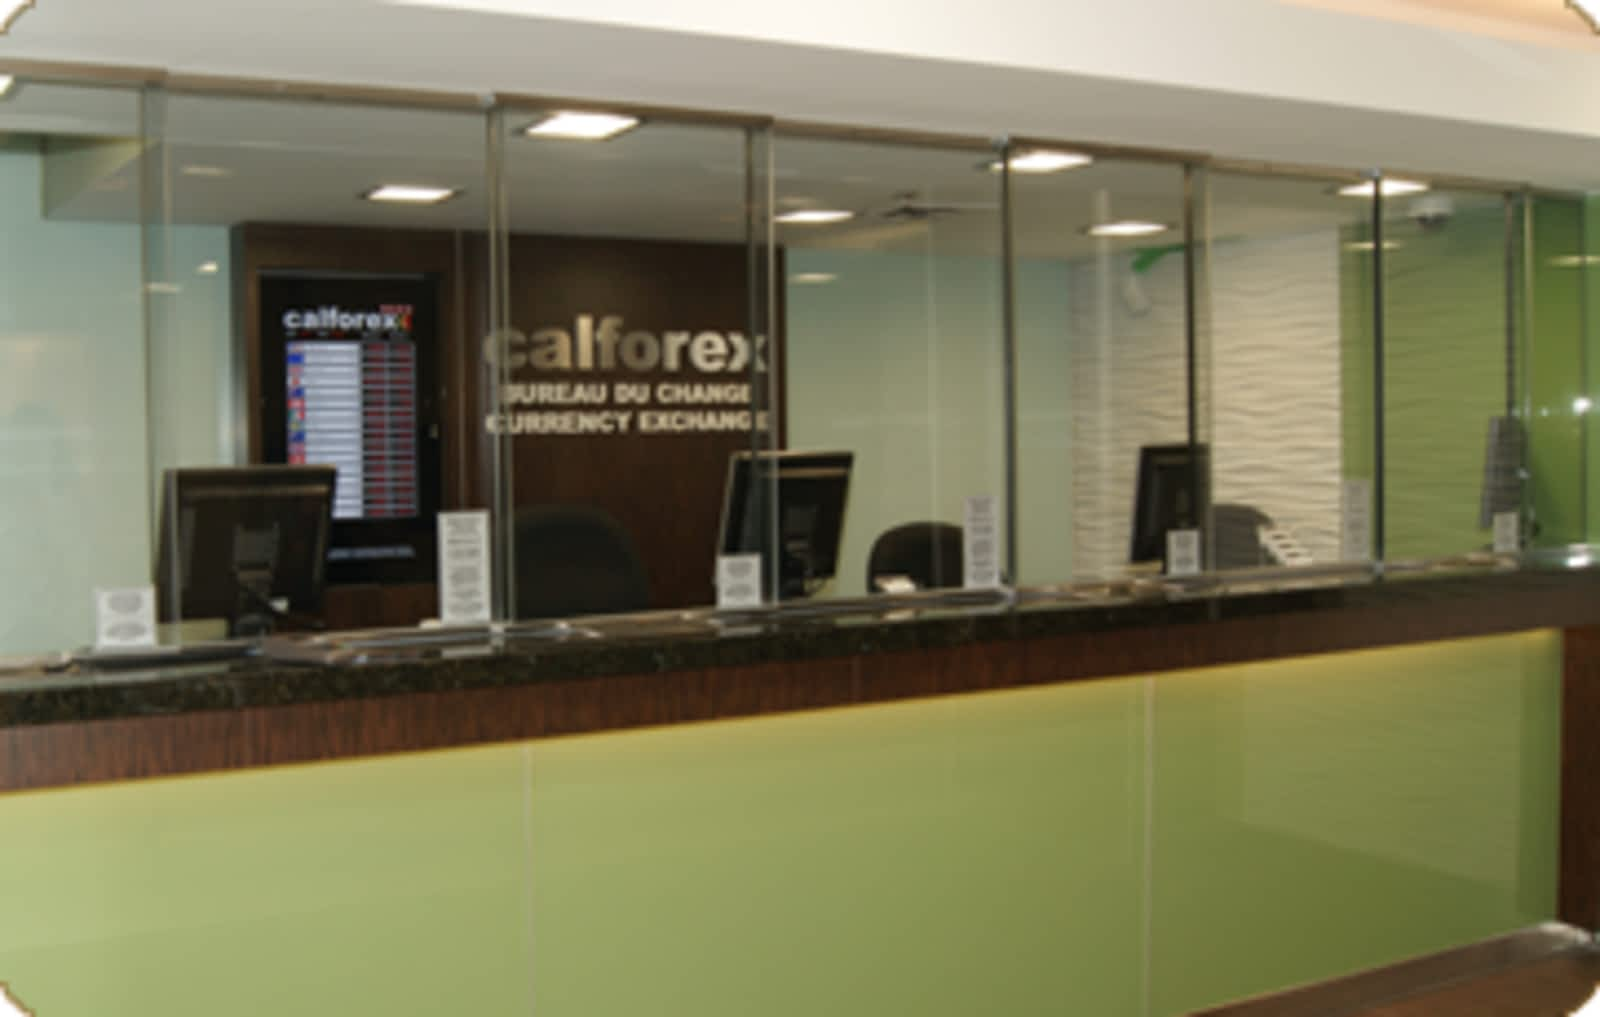 Calforex currency exchange opening hours 322 50 rideau st